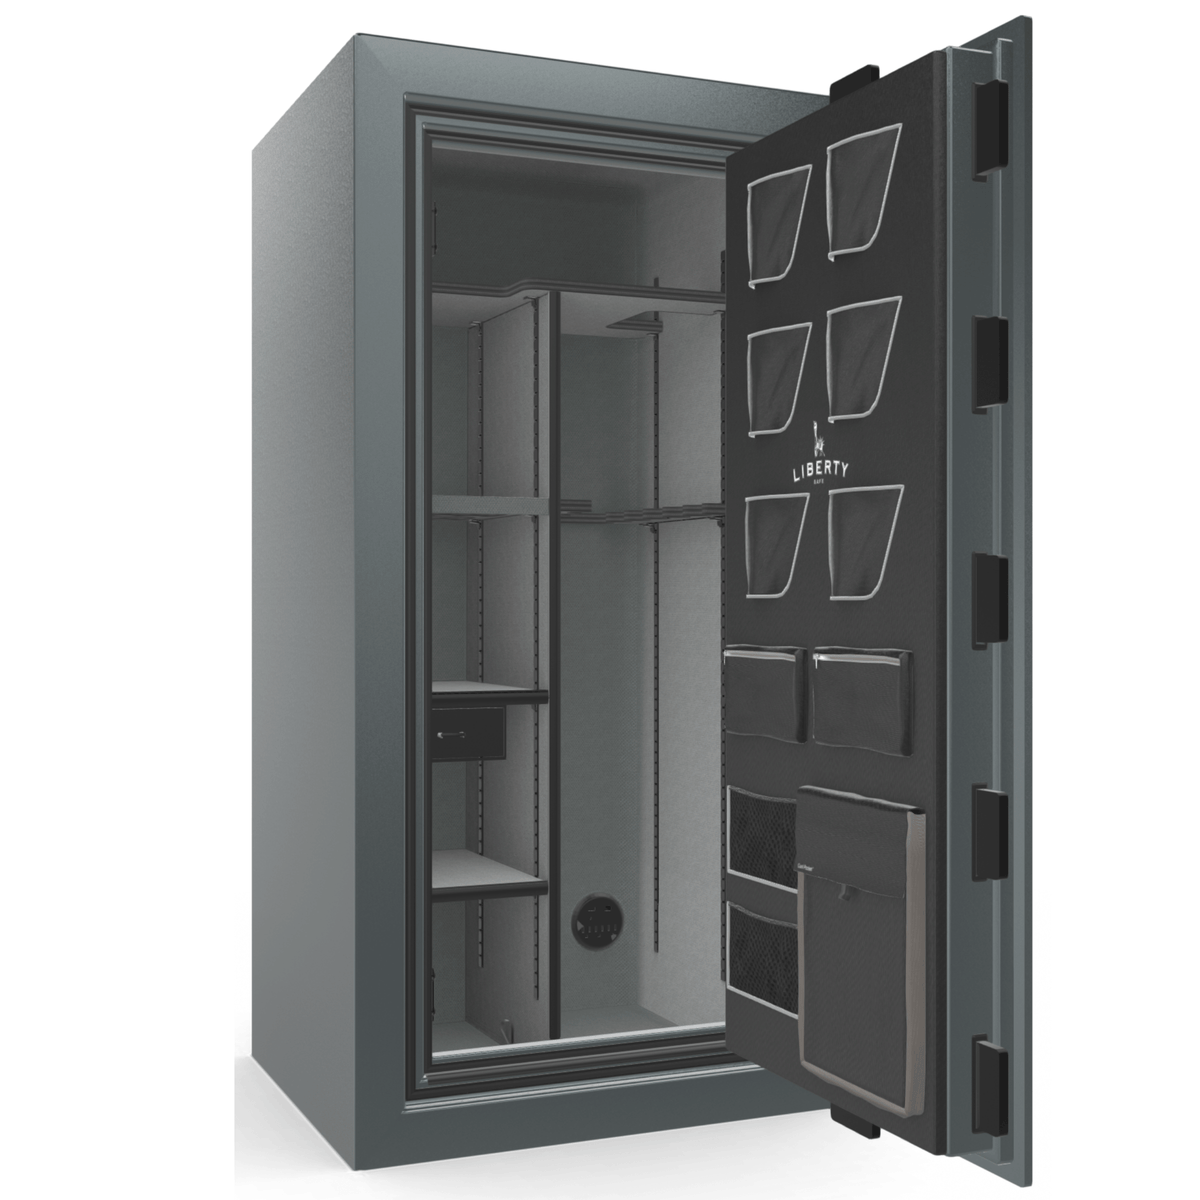 "Classic Plus | 25 | Level 7 Security | 110 Minute Fire Protection | Forest Mist Gloss | Black Mechanical Lock | 60.5""(H) x 30""(W) x 29""(D)"